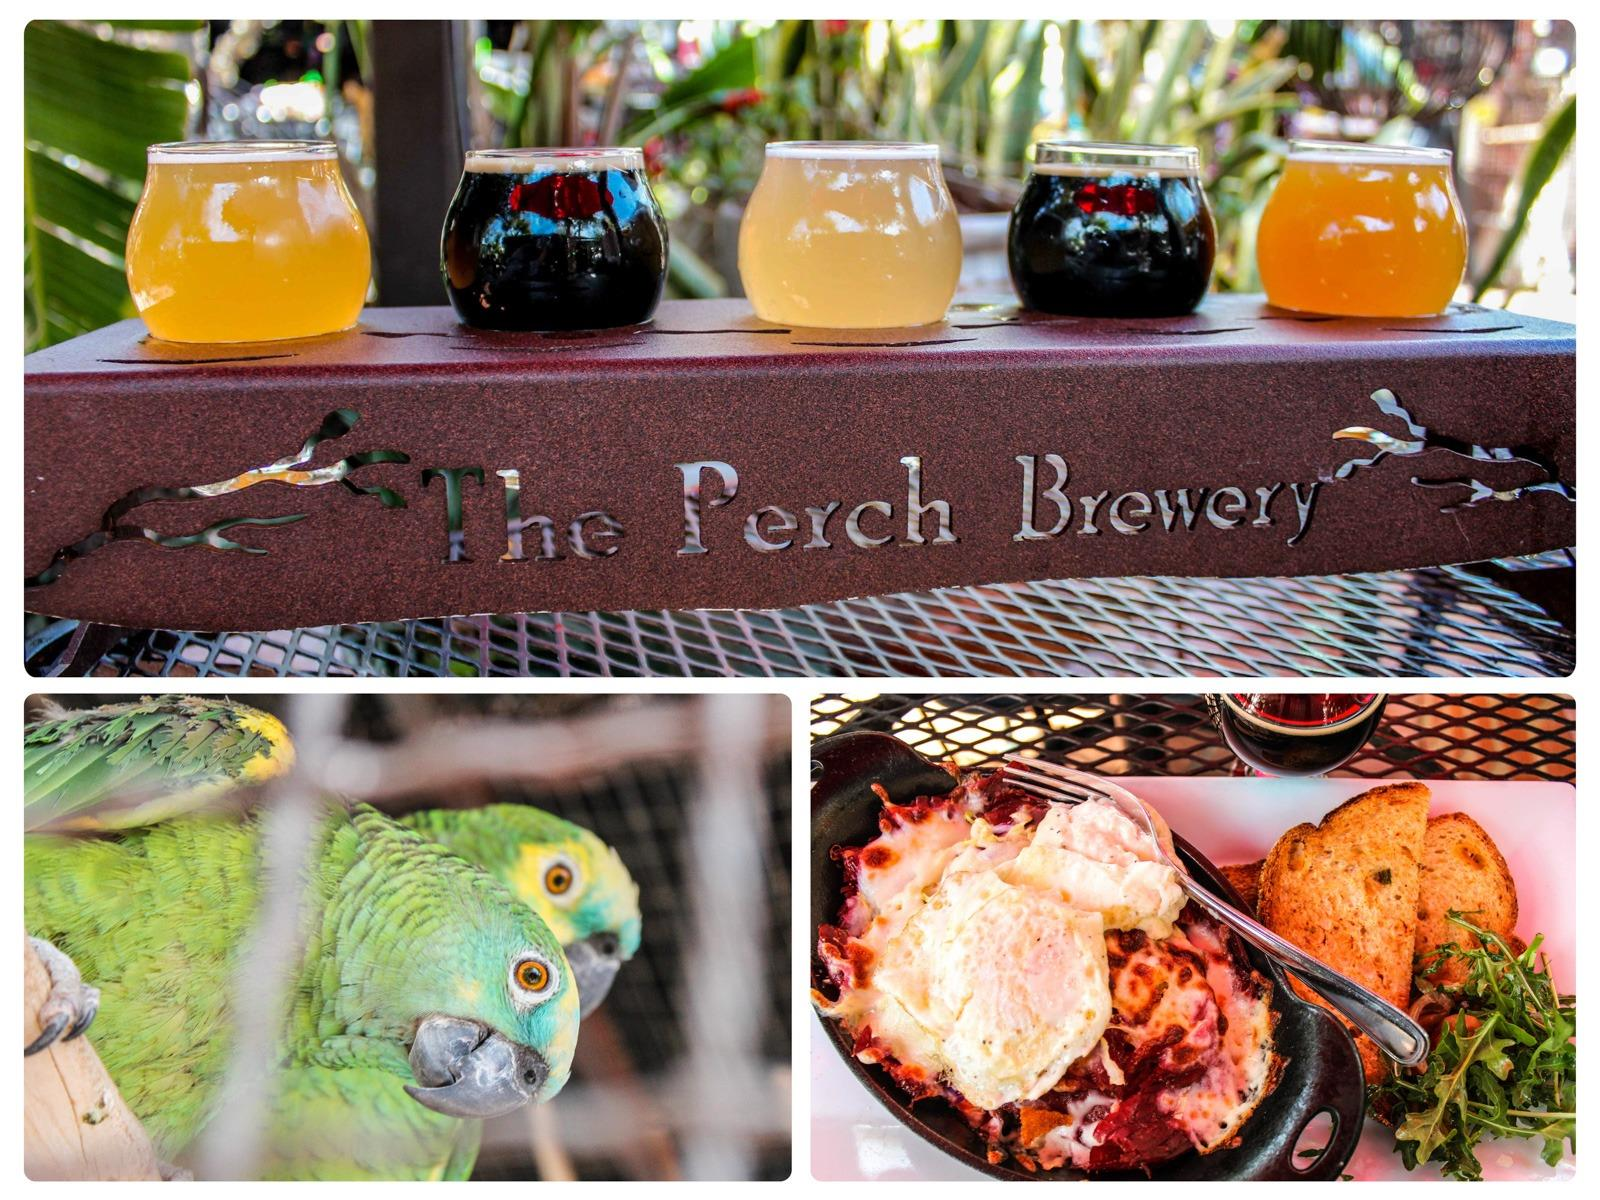 Chandler - The Perch Brewery